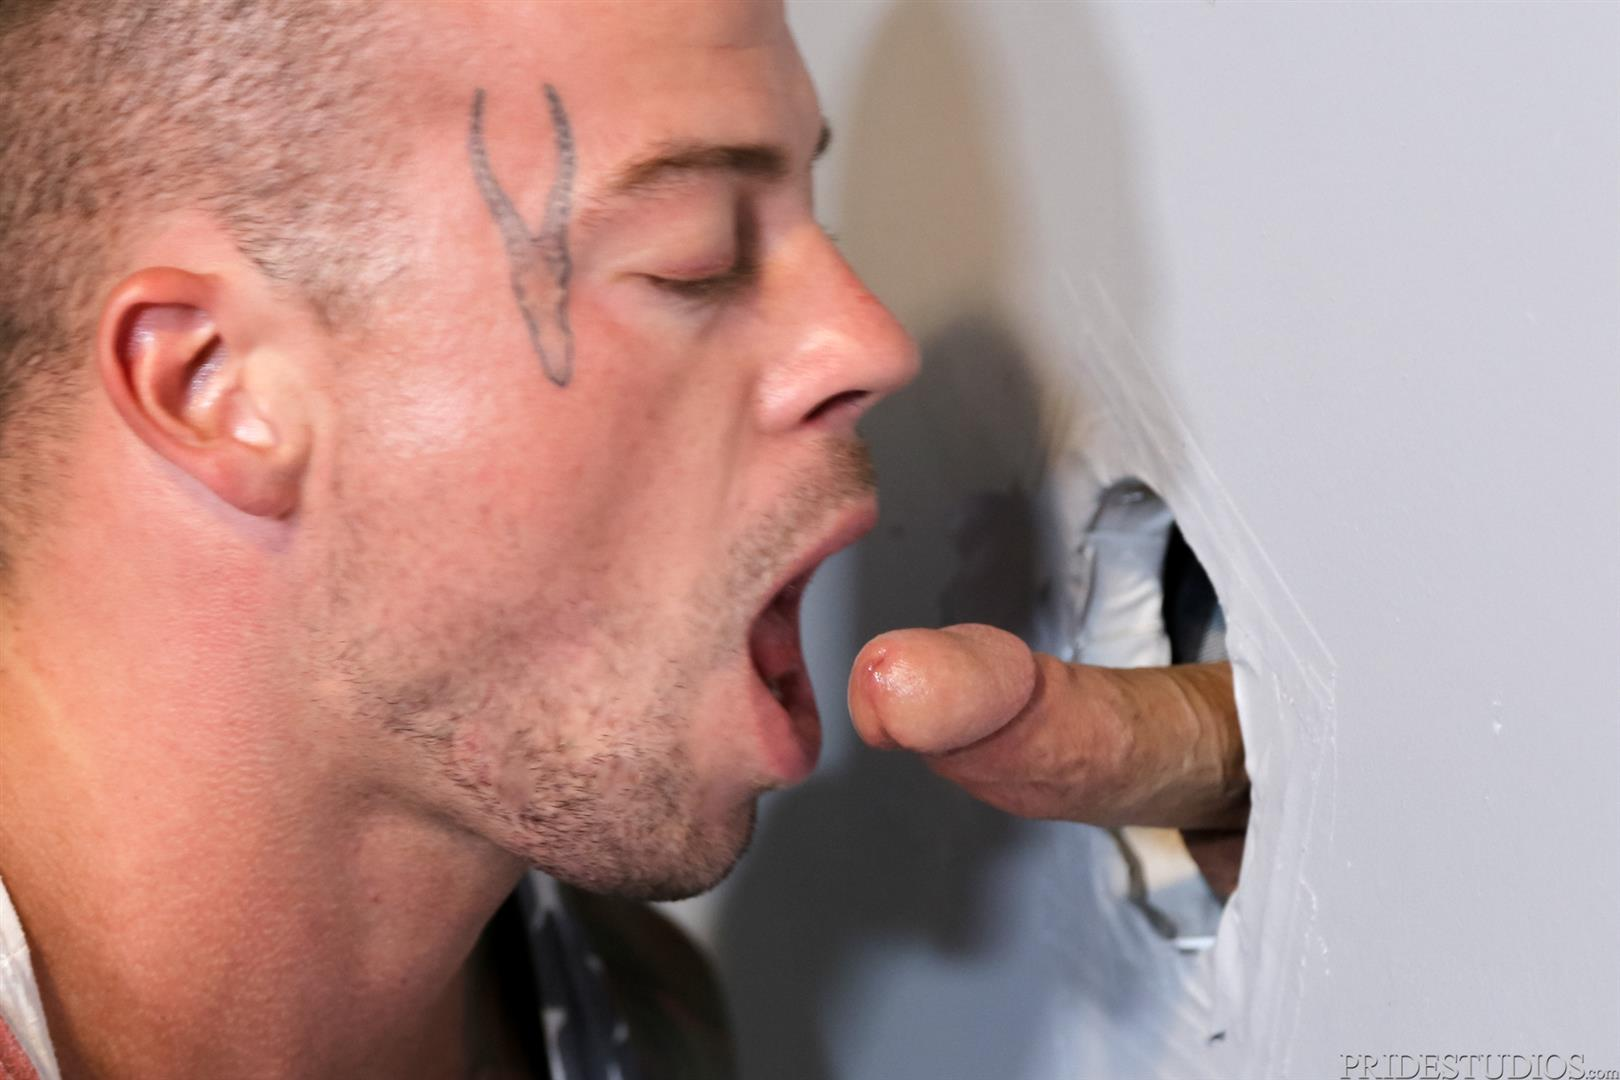 Extra-Big-Dicks-Sean-Duran-Fucking-Through-A-Glory-Hole-Amateur-Gay-Porn-04 Getting Fucked By A Big Fat Cock Through a Glory Hole